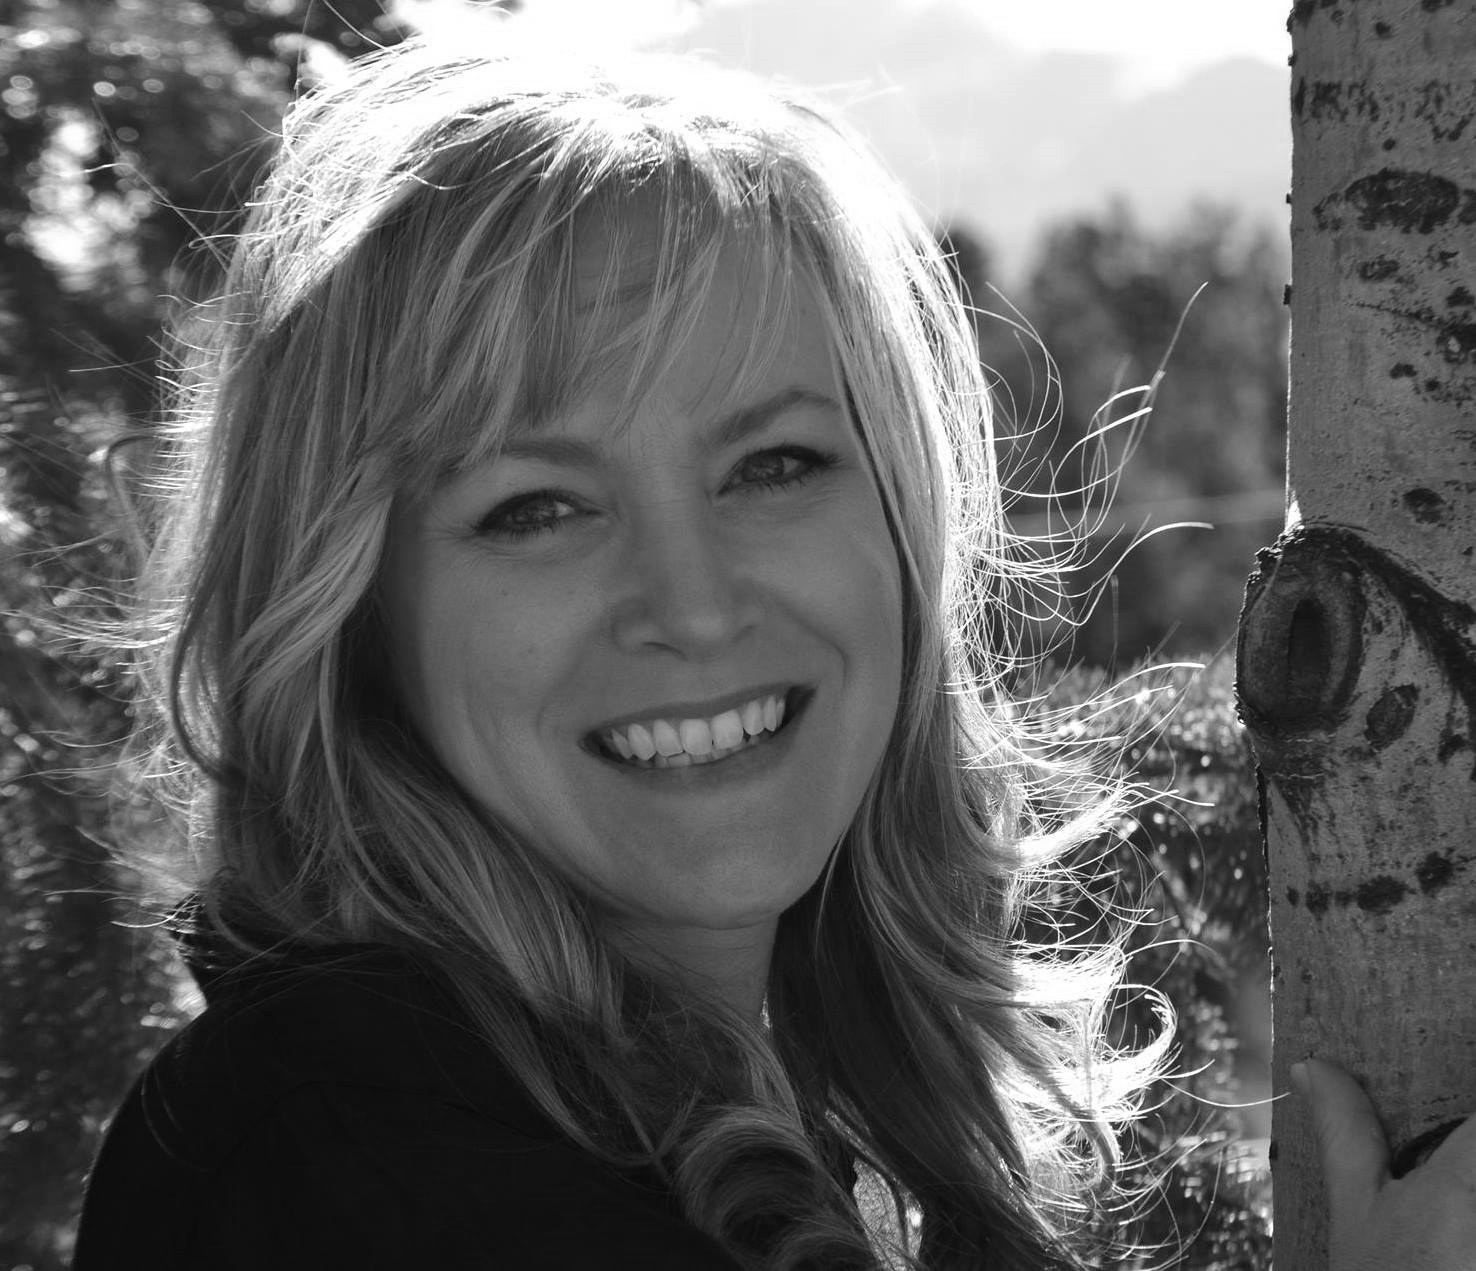 jill tomlinson voices against the grain jill tomlinson voices against the grain devotional writer co founder of transcend ministries